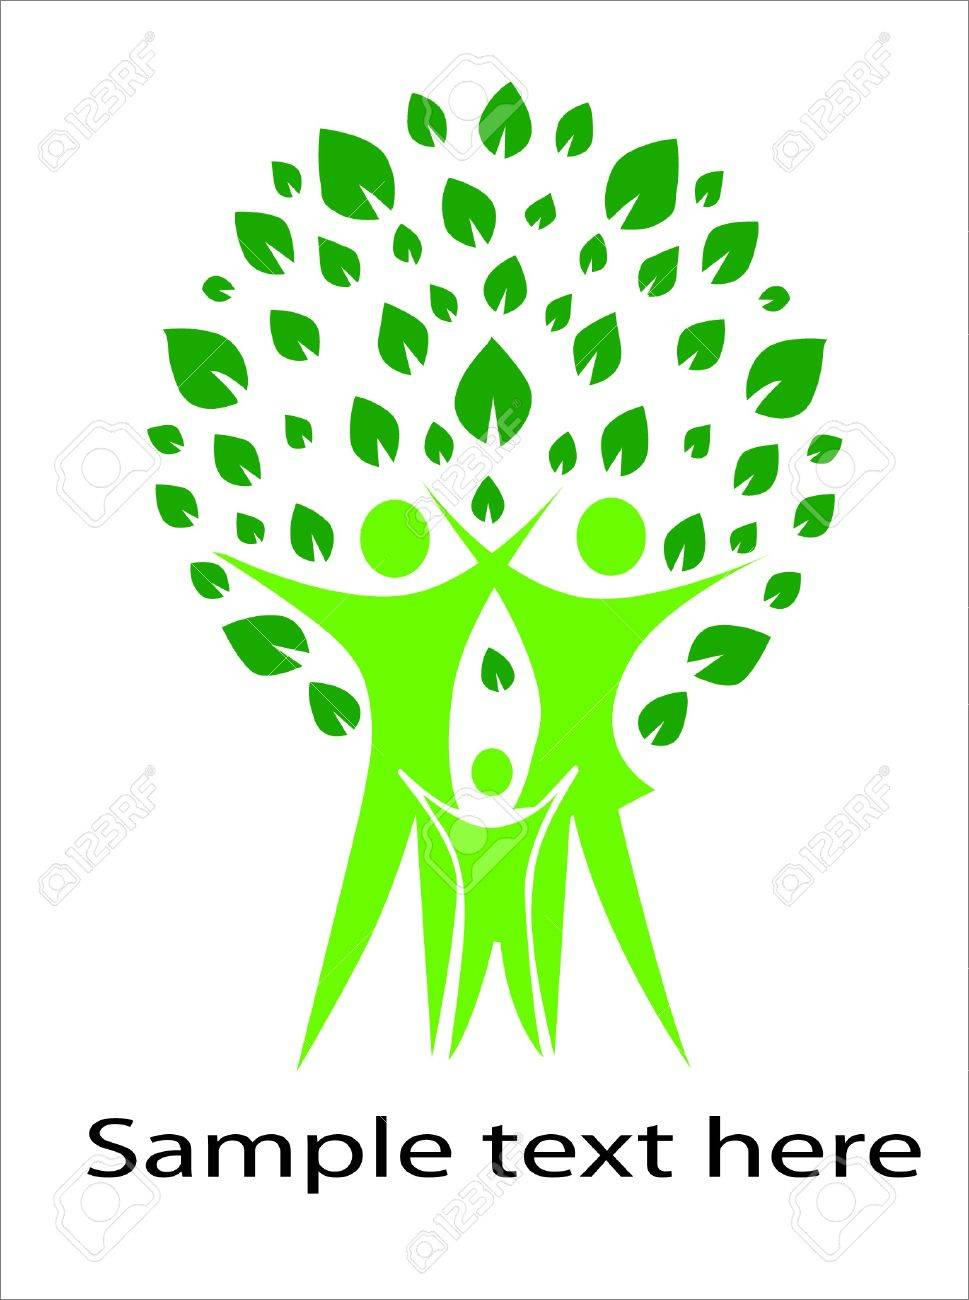 A pictographic image of a green family Stock Vector - 18550887